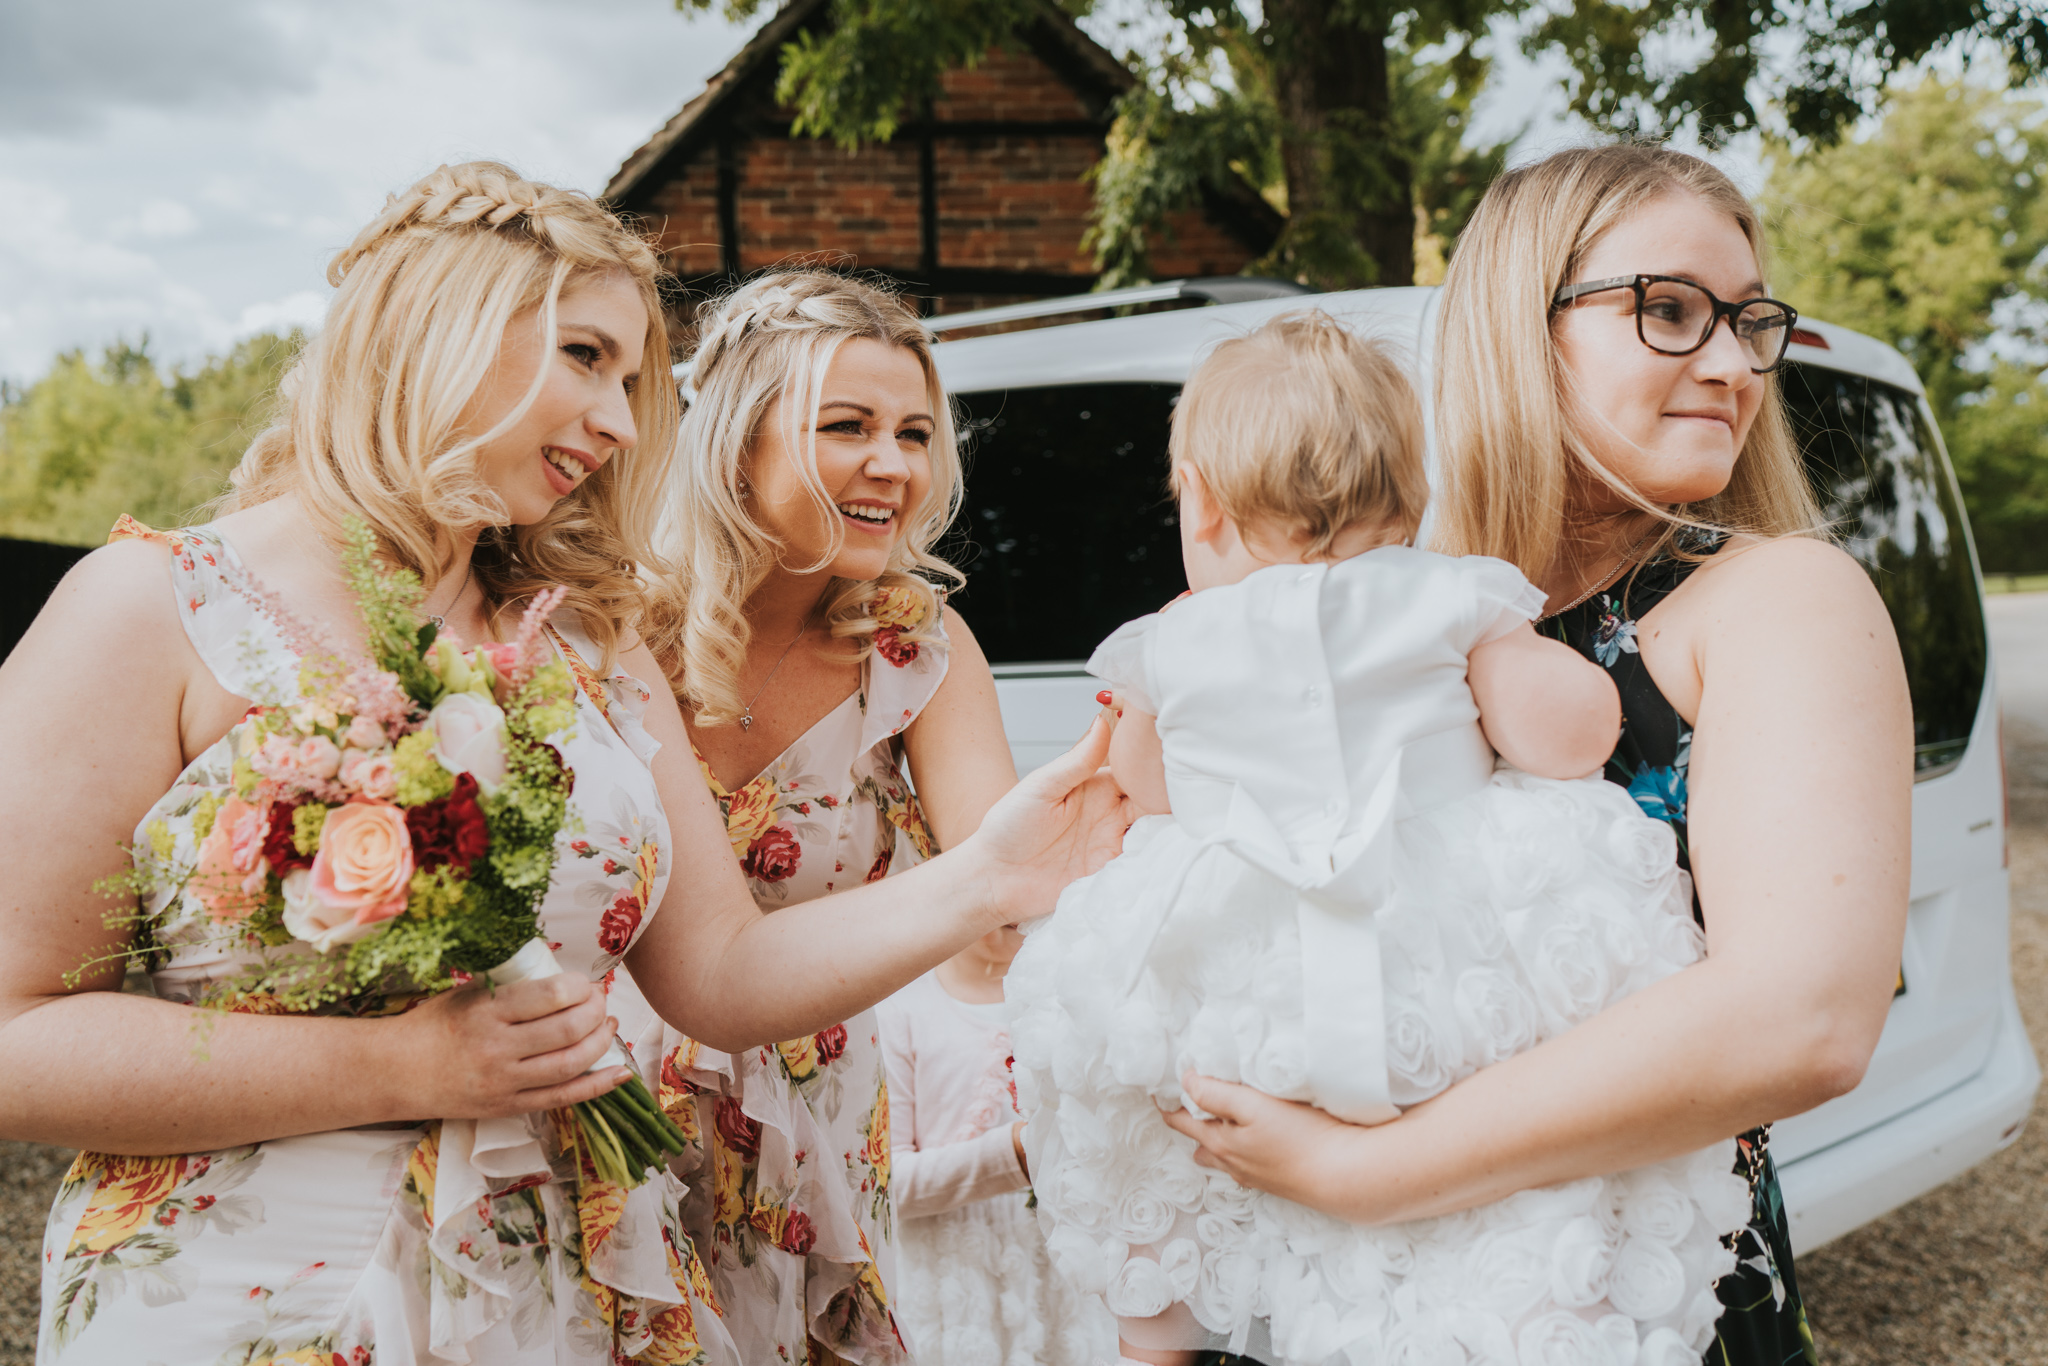 sophie-mark-newland-hall-boho-wedding-grace-elizanbeth-alternative-wedding-photographer-colchester-essex-norfolk-suffolk-devon (77 of 161).jpg